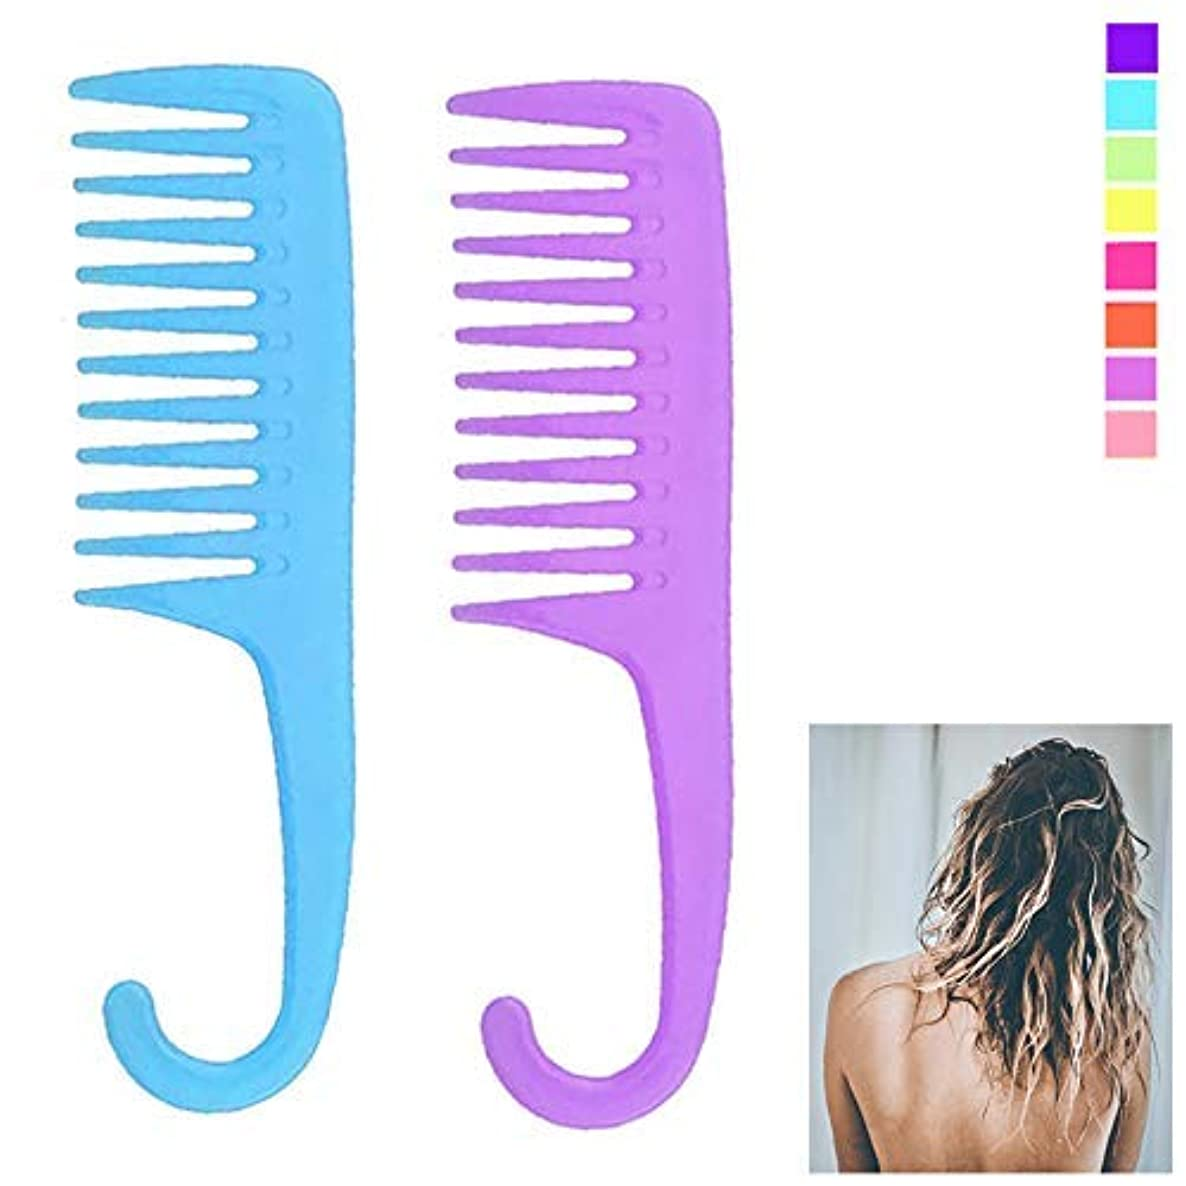 競合他社選手女性牛2 Shower Combs Hair Wide Tooth Dry Wet Gently Detangles Thick Long Durable Salon [並行輸入品]